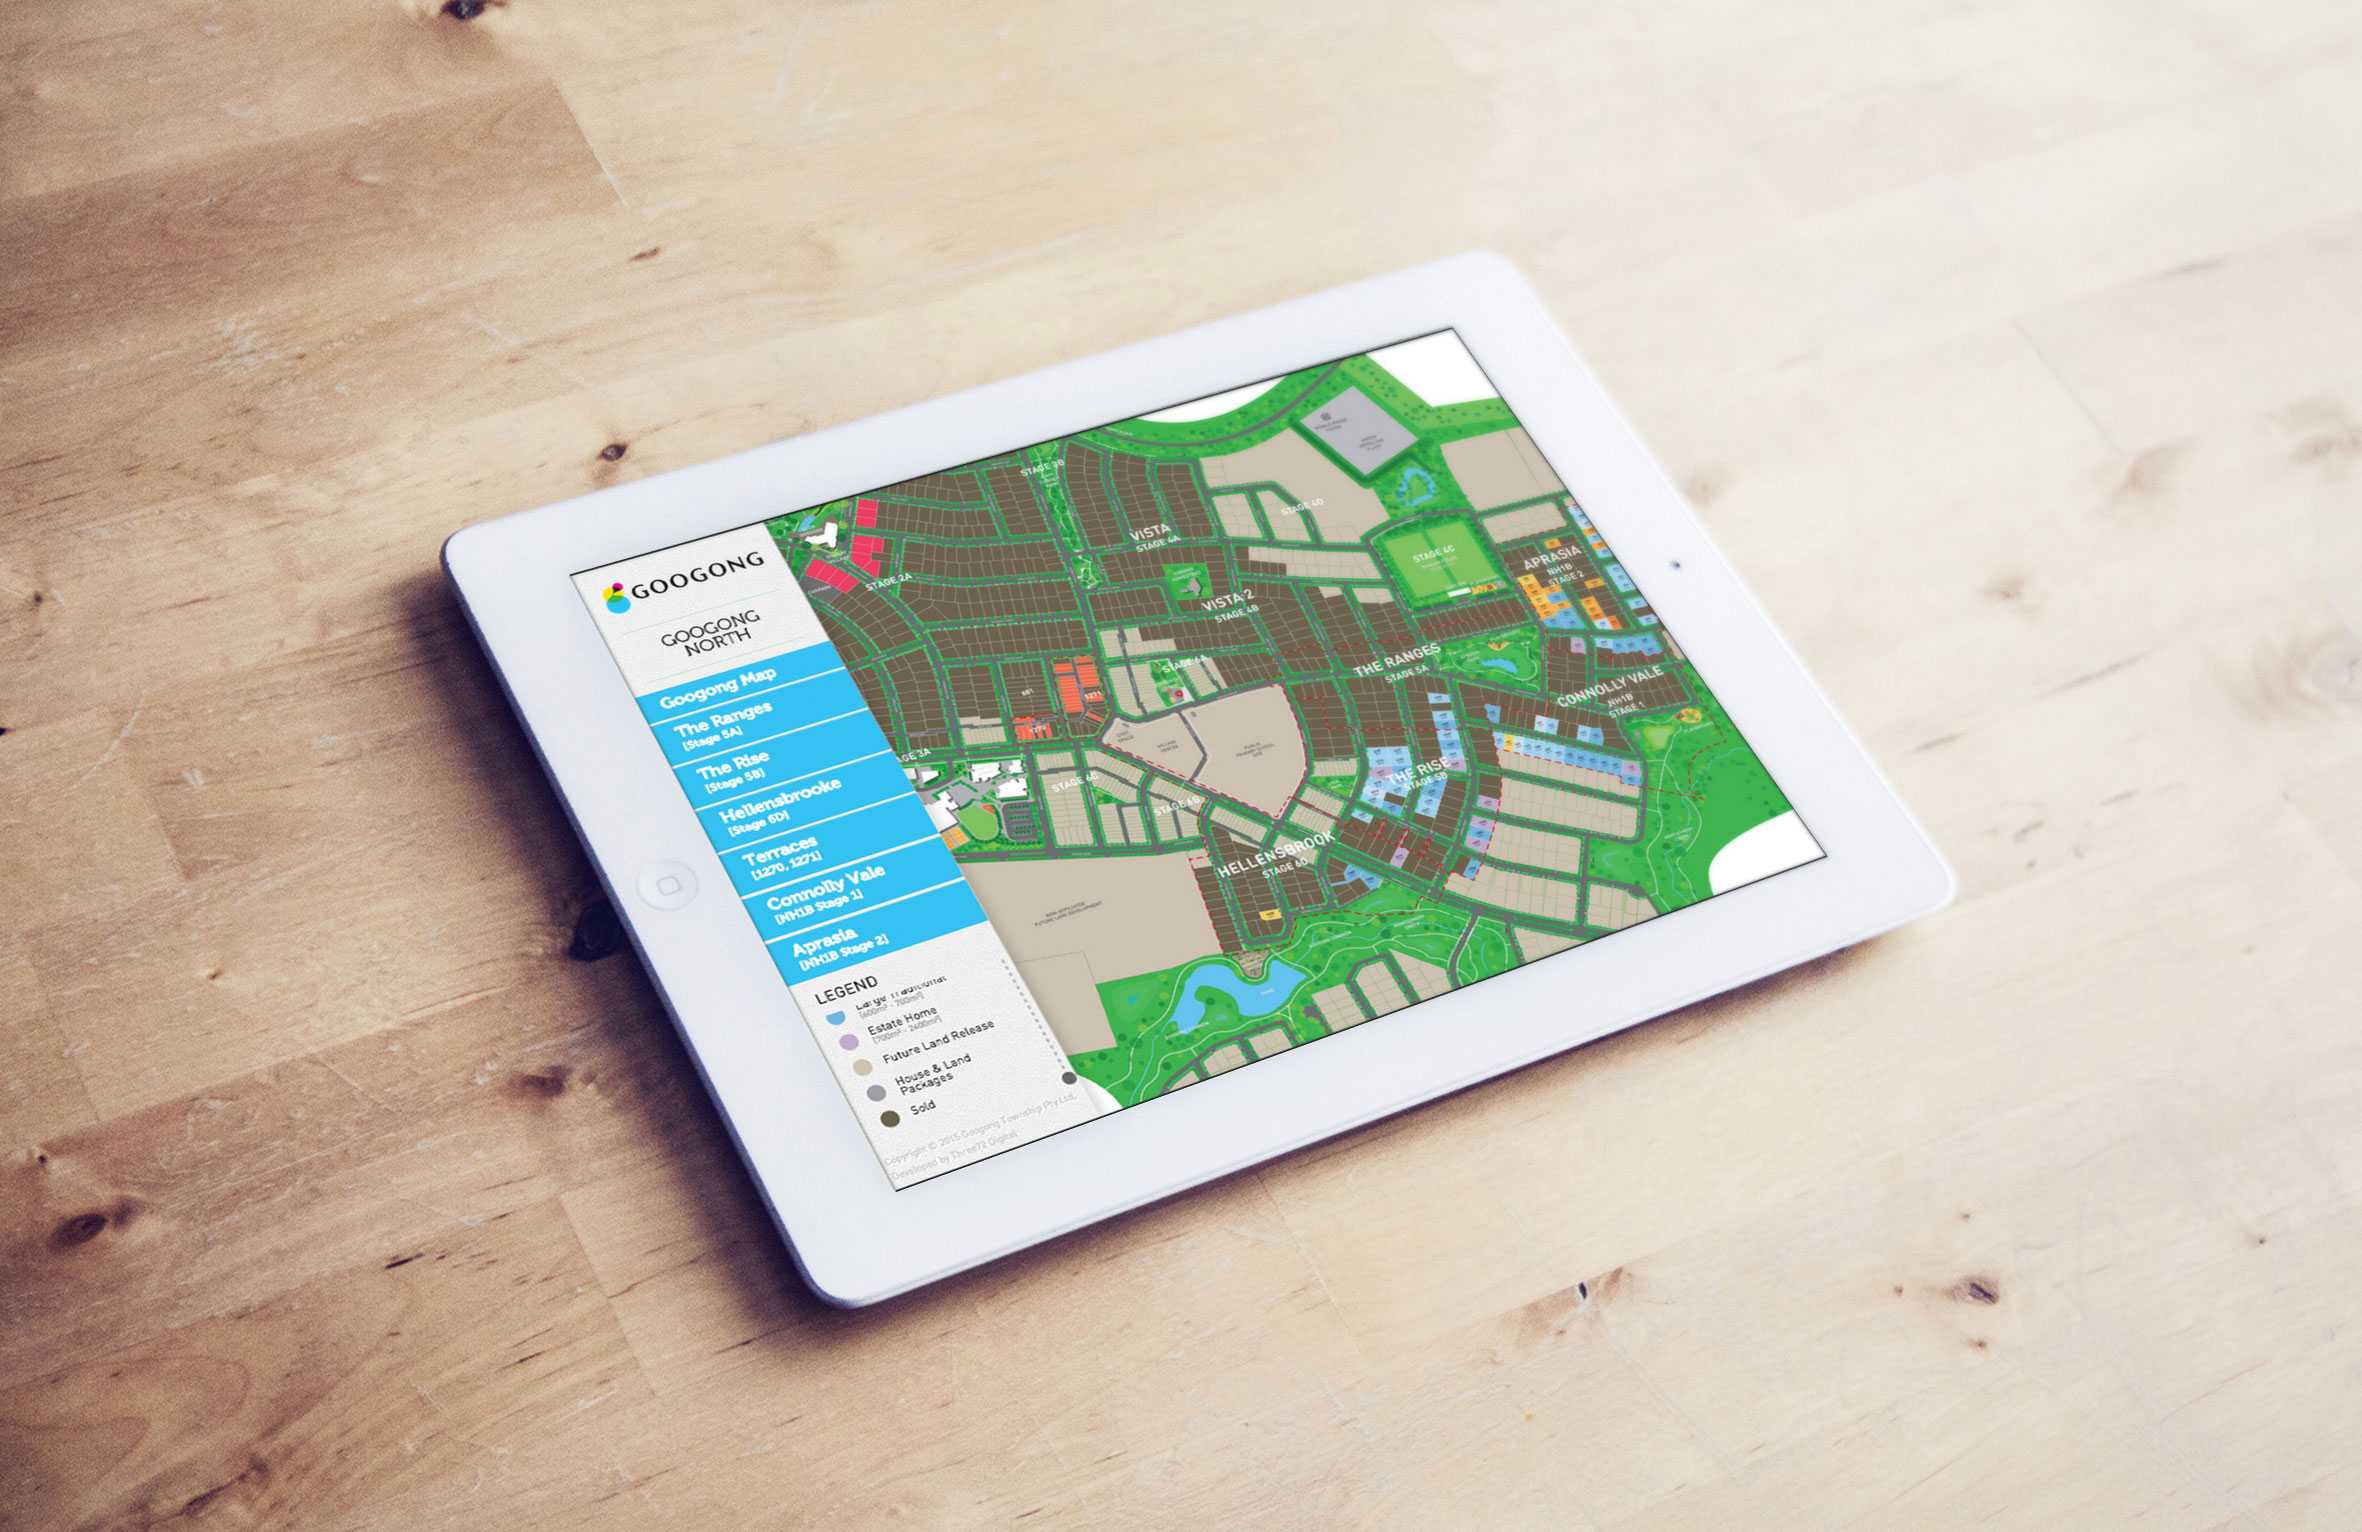 Googong North master plan, opened on an iPad, with the available lots for sale.